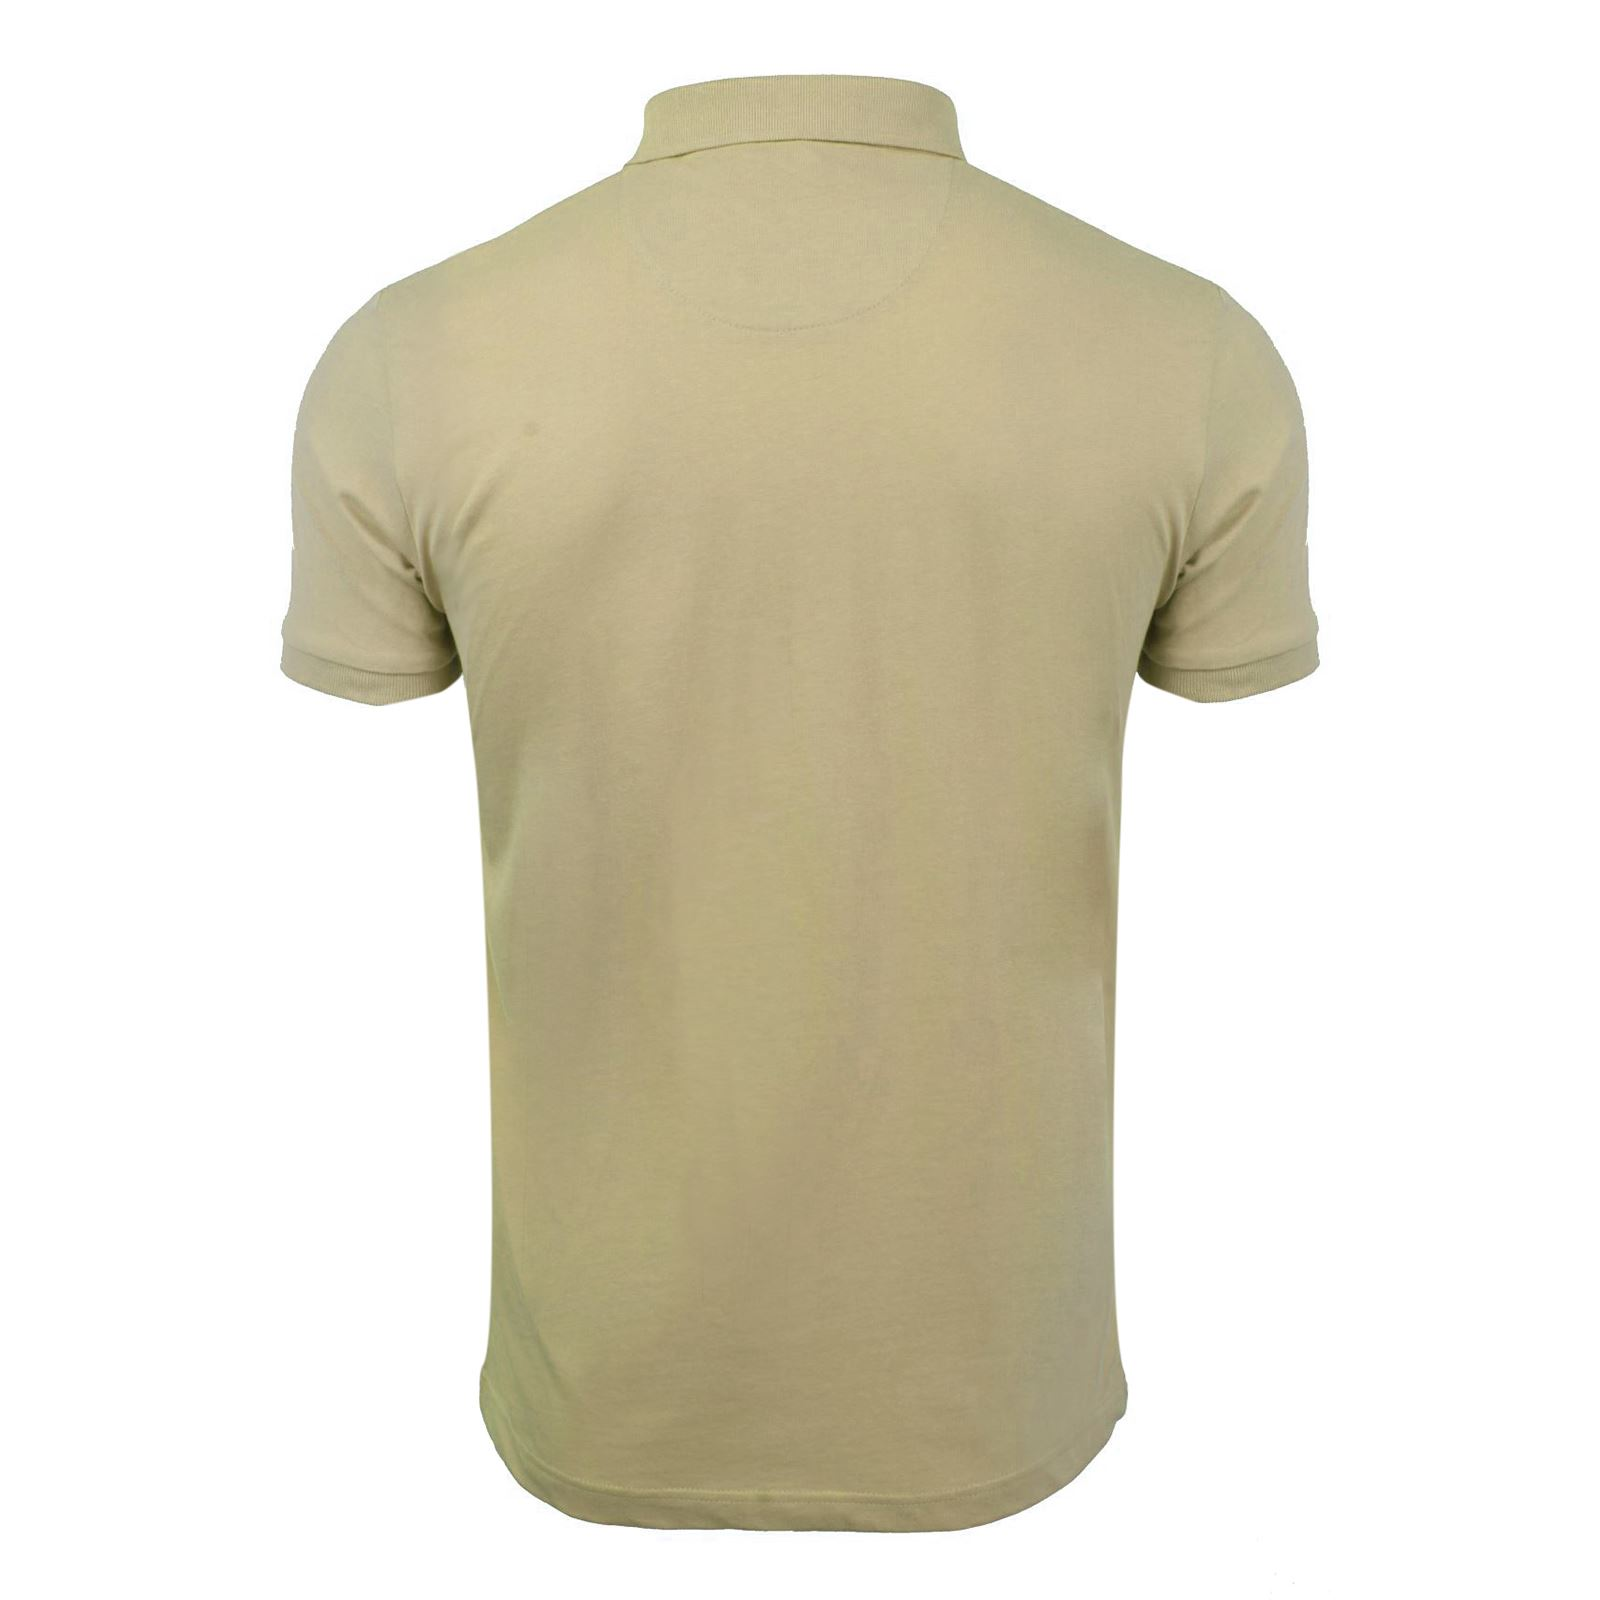 Mens-Polo-T-Shirt-Brave-Soul-Glover-Cotton-Collared-Short-Sleeve-Casual-Top thumbnail 67